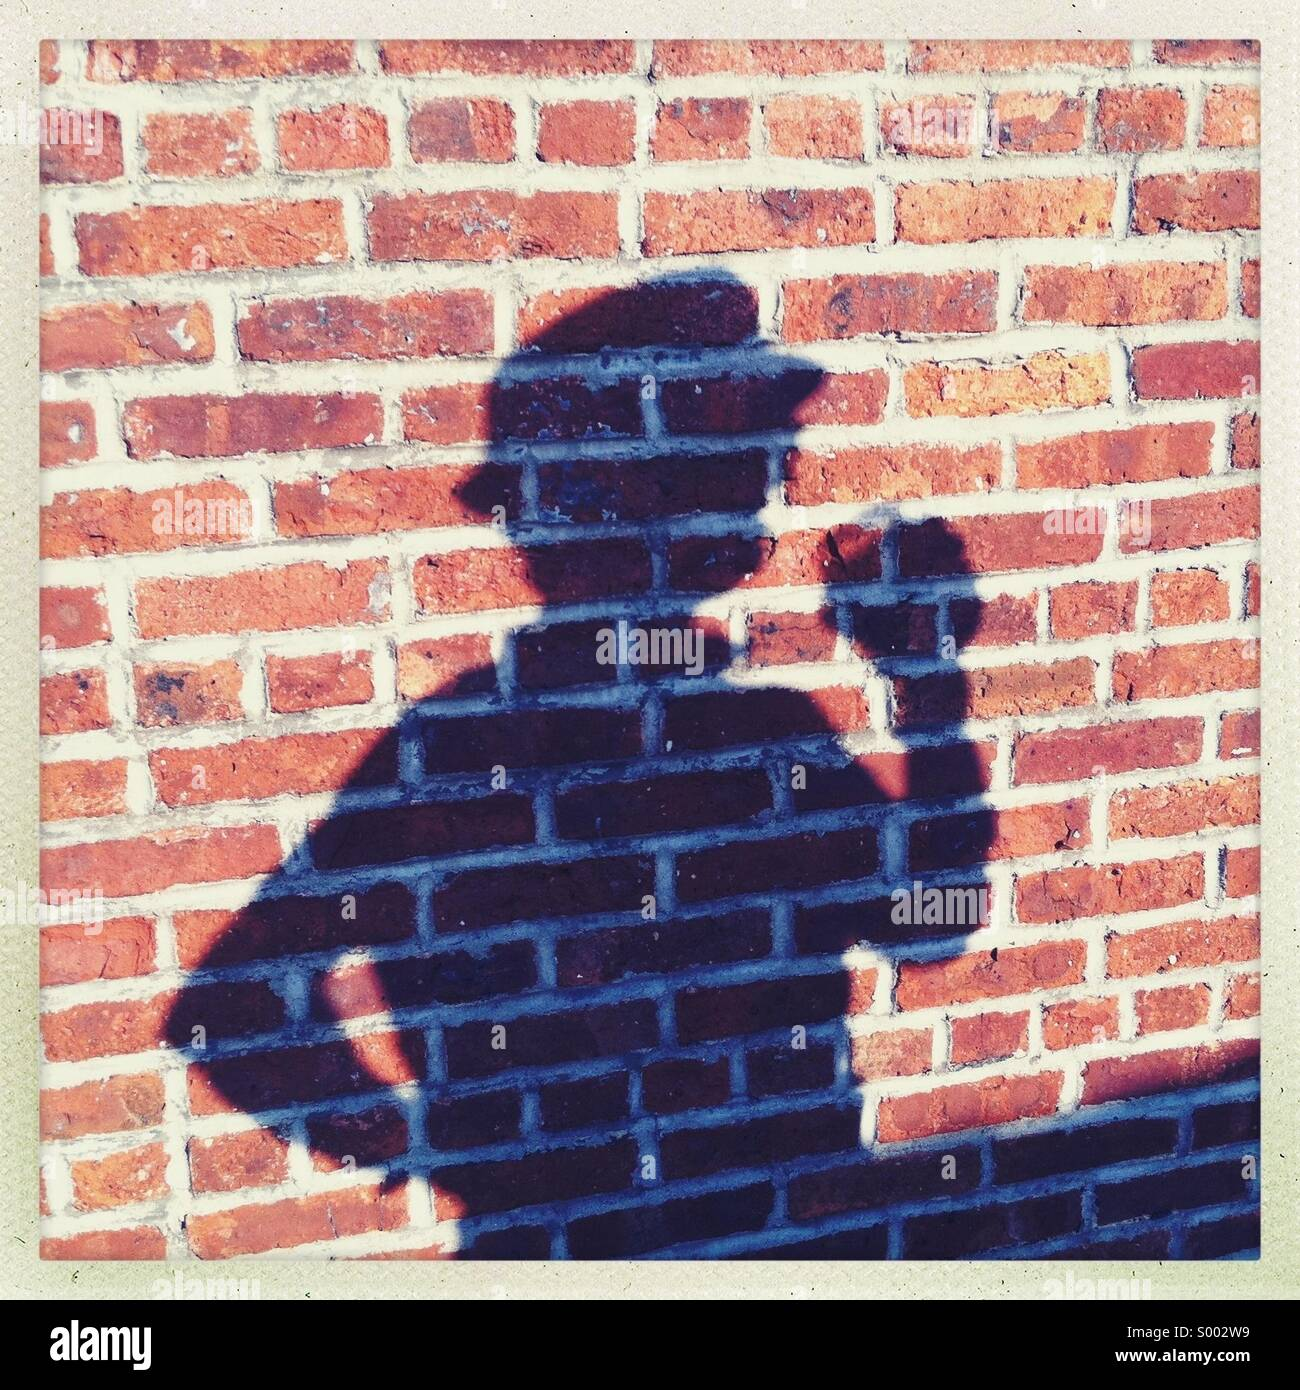 The shadow of a man against a brick wall - Stock Image